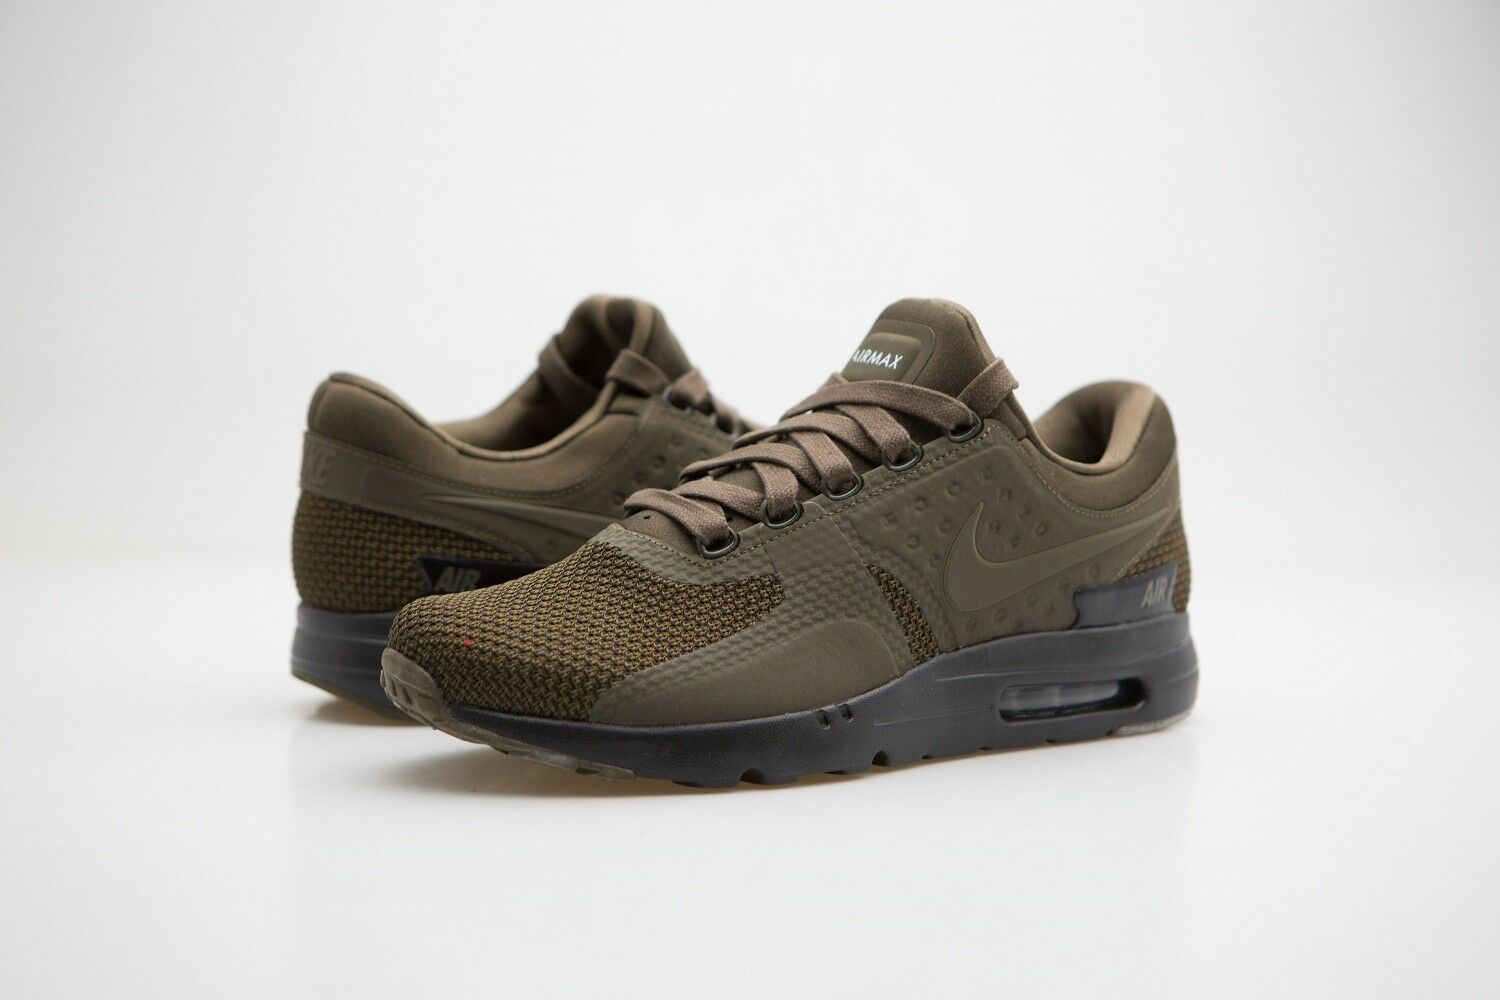 881982-300 Nike Men Air Max Zero Premium Dark Loden Black